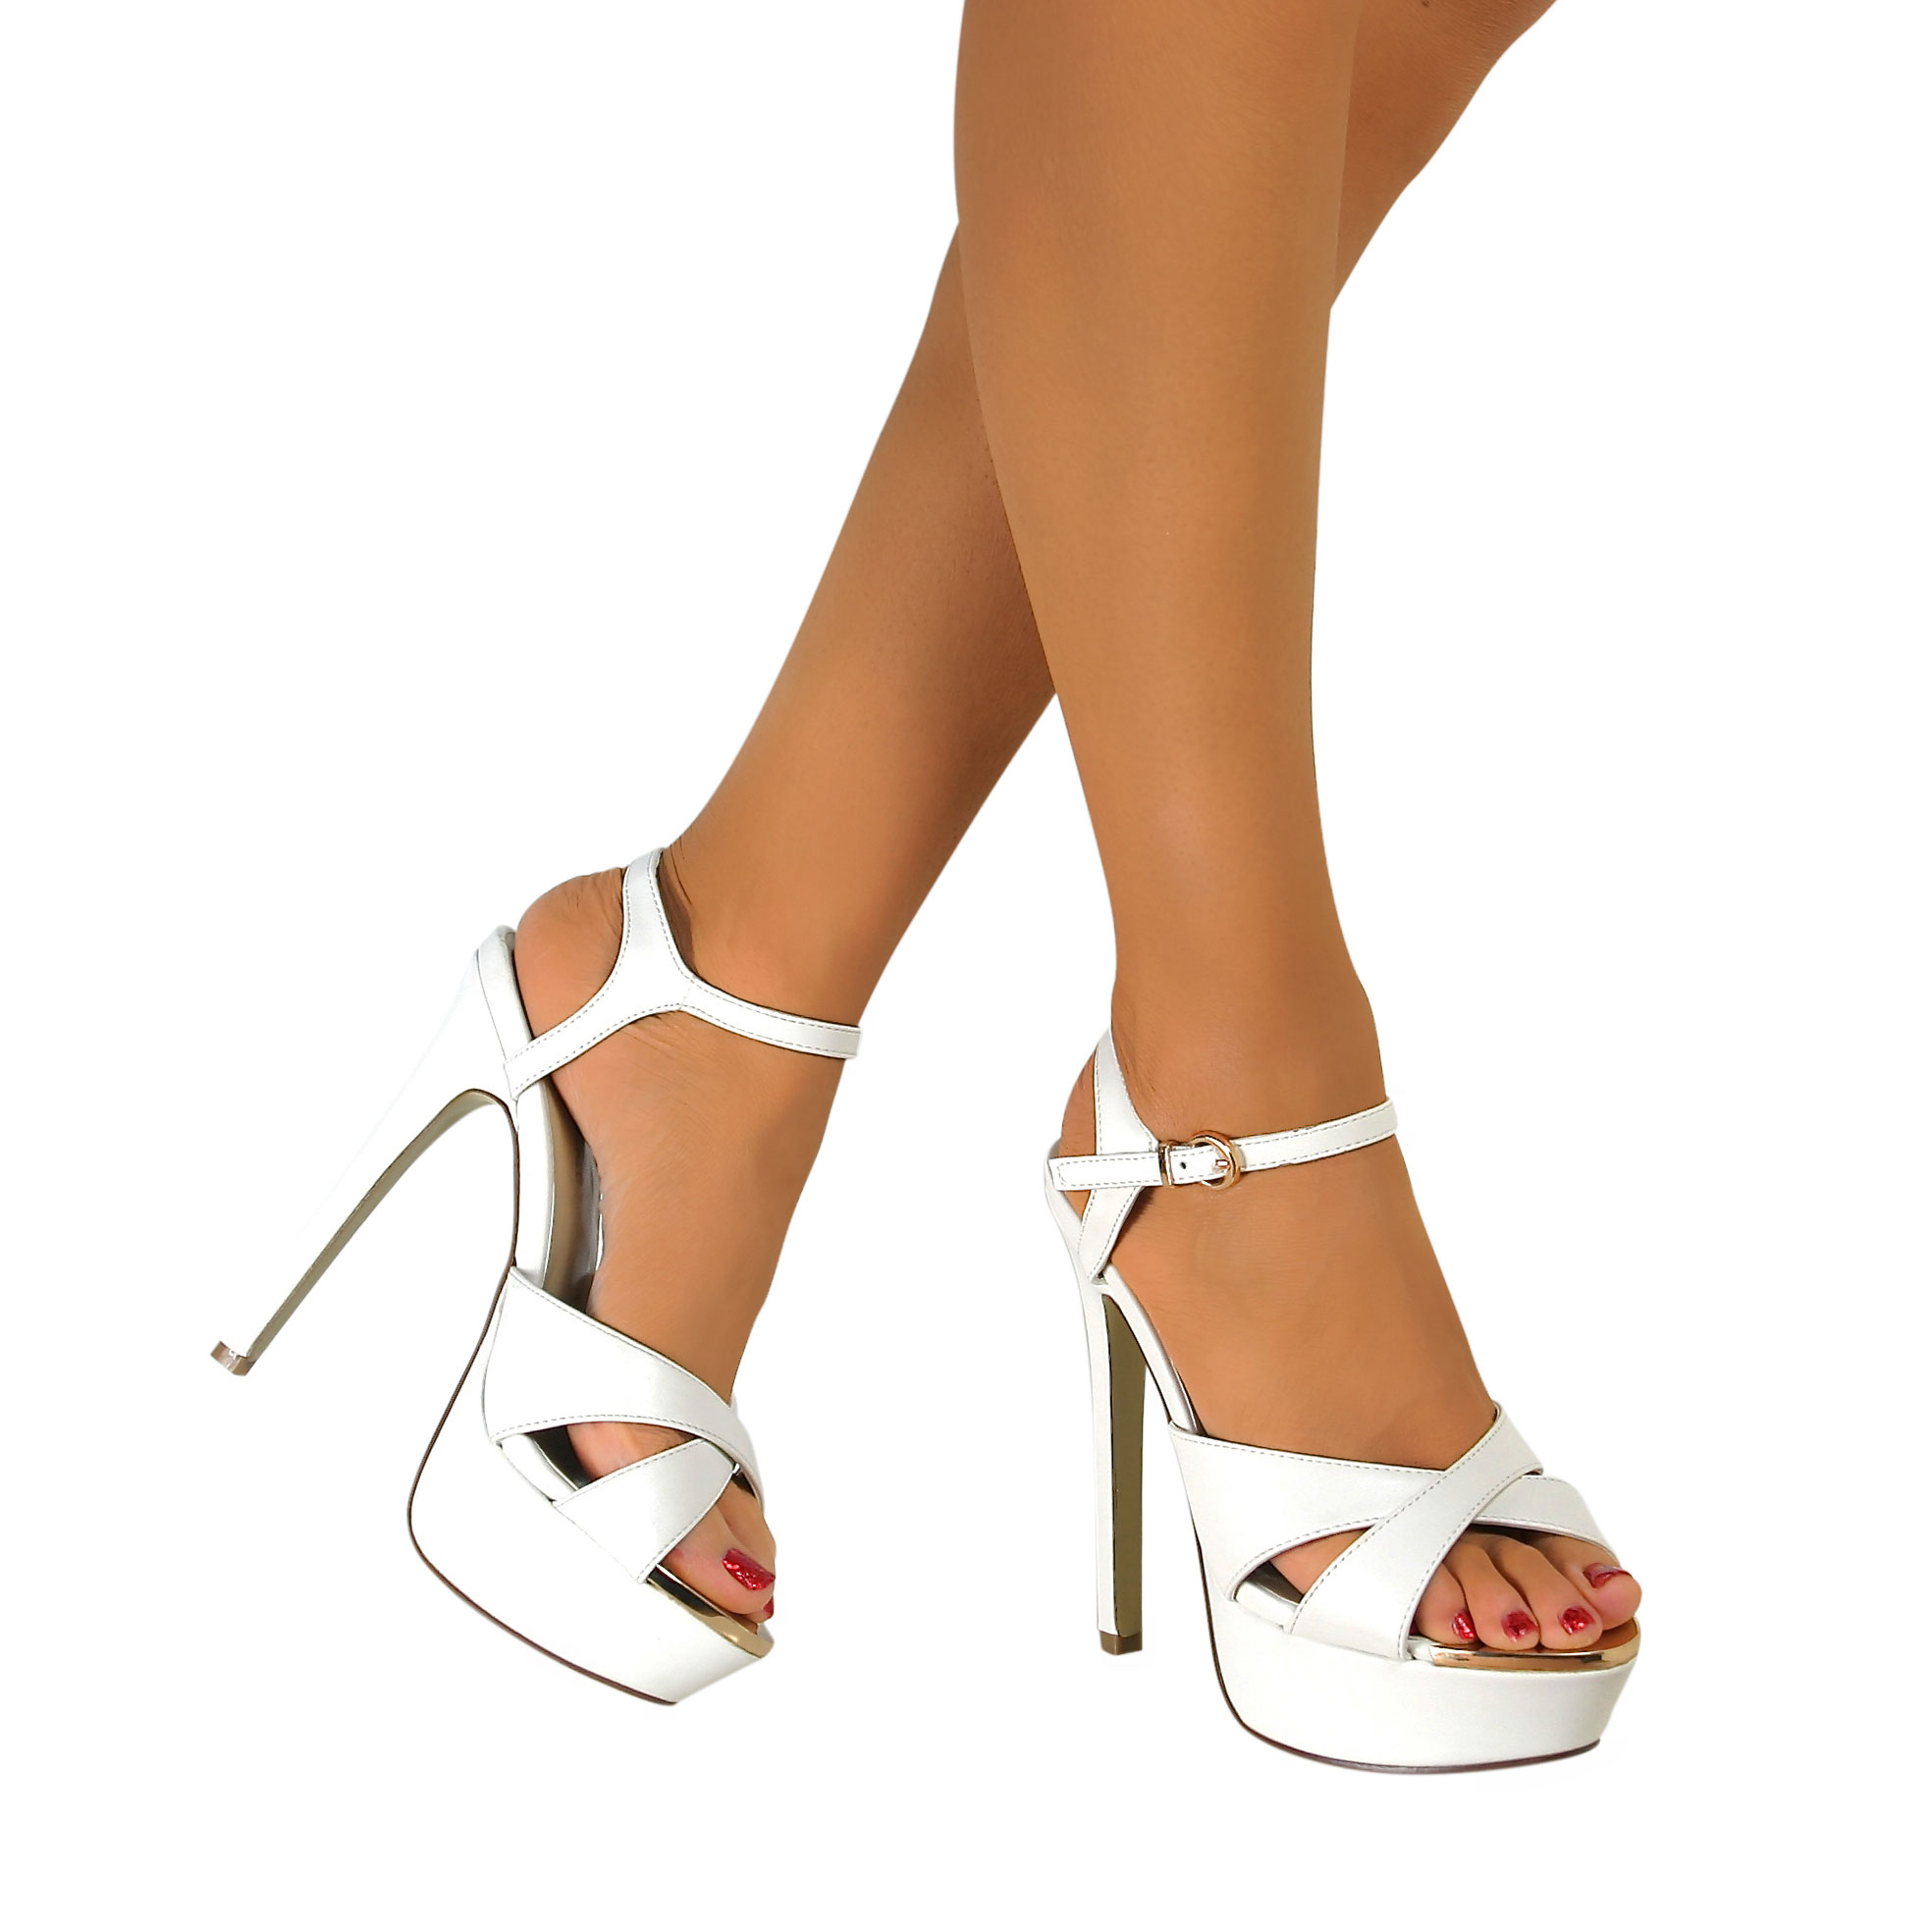 Womens-Platform-High-Heel-Ankle-Strap-Peep-Toe-Shoes-Party-Sandals-UK-Size